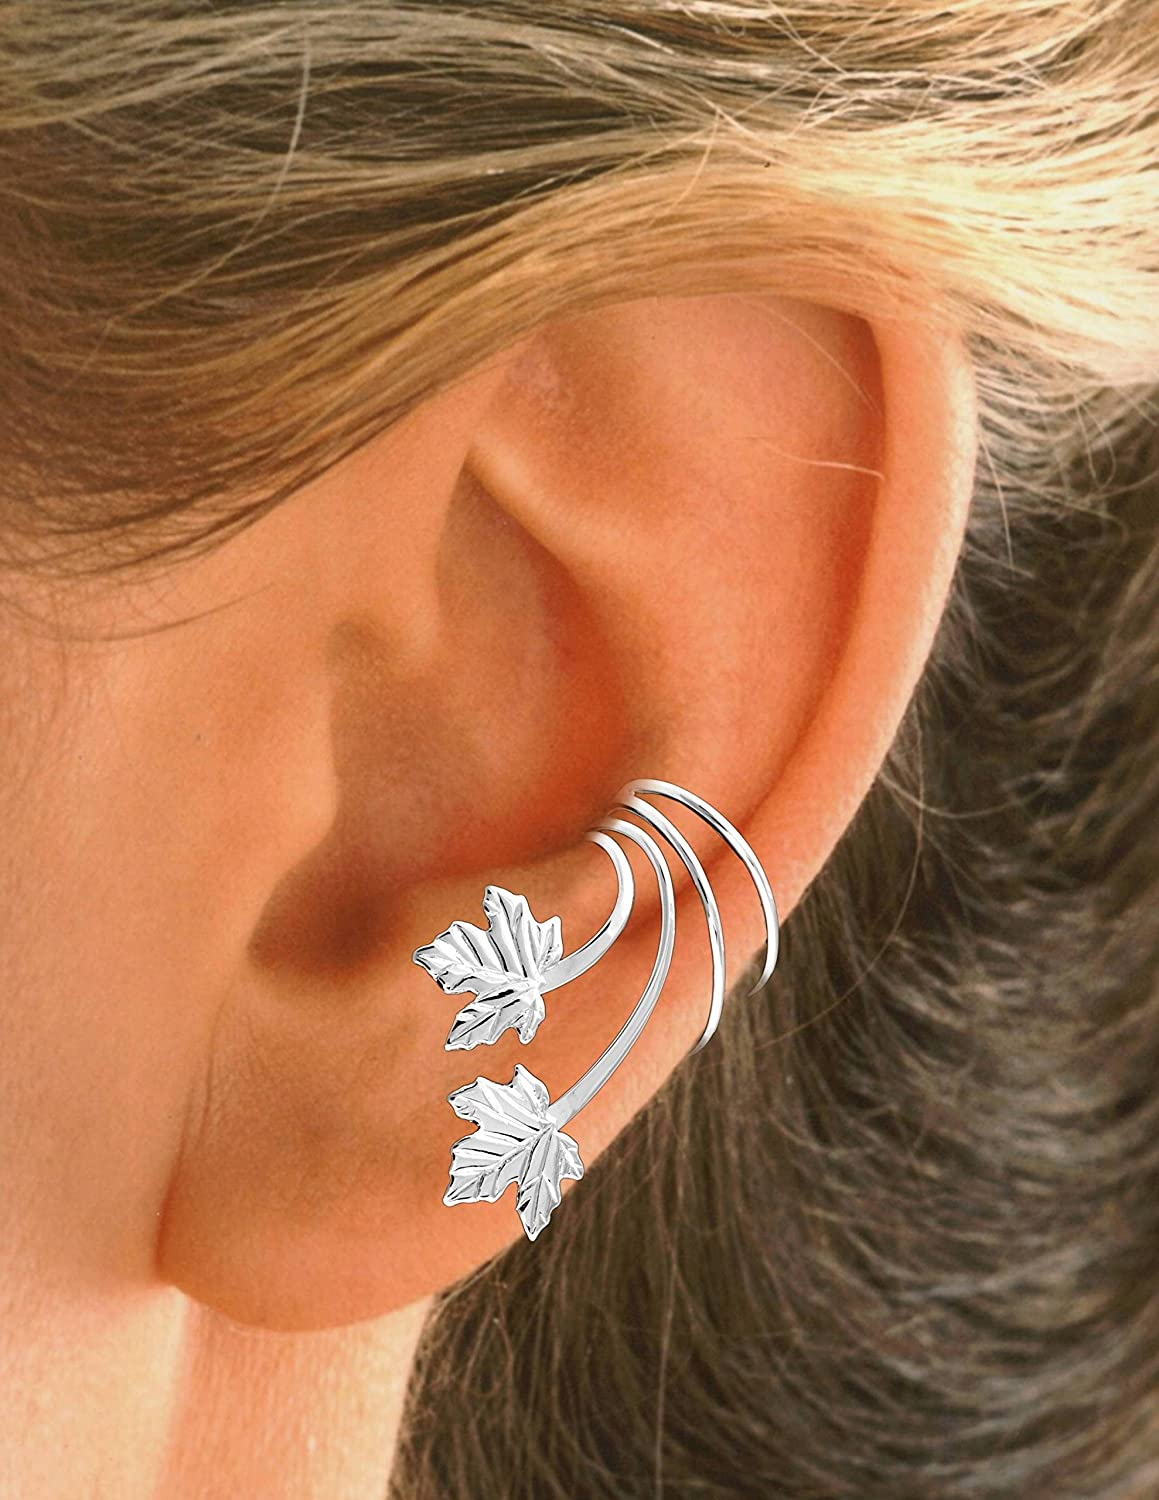 Boxed 925 Sterling Silver Patterned Ear Cuff